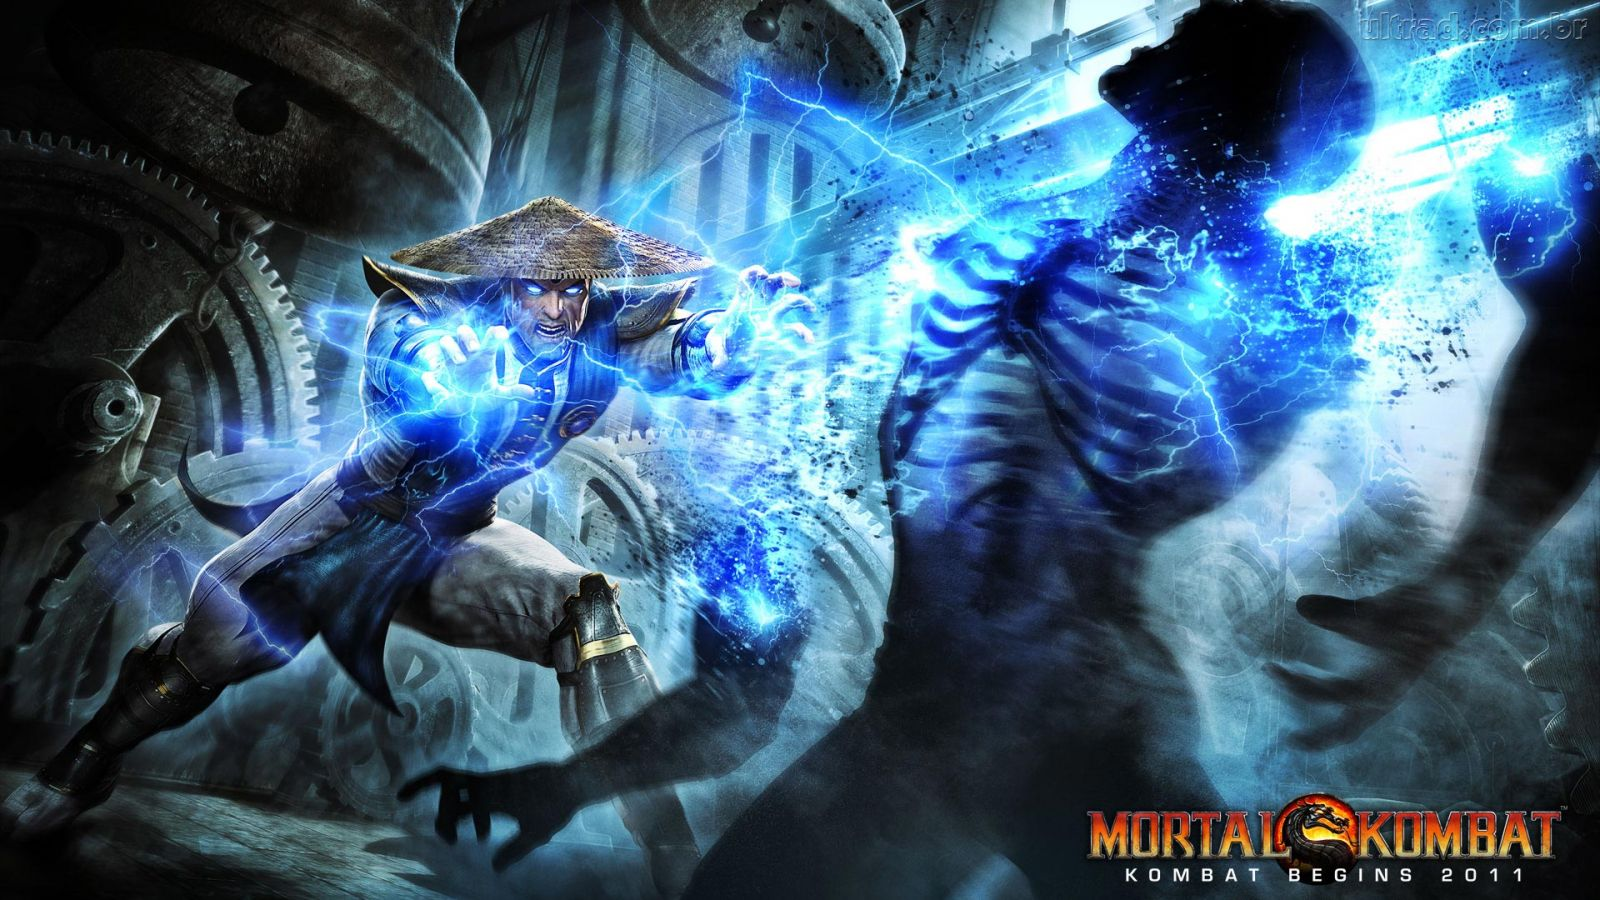 42 Hd Raiden Wallpaper On Wallpapersafari: Raiden Mortal Kombat X Wallpaper